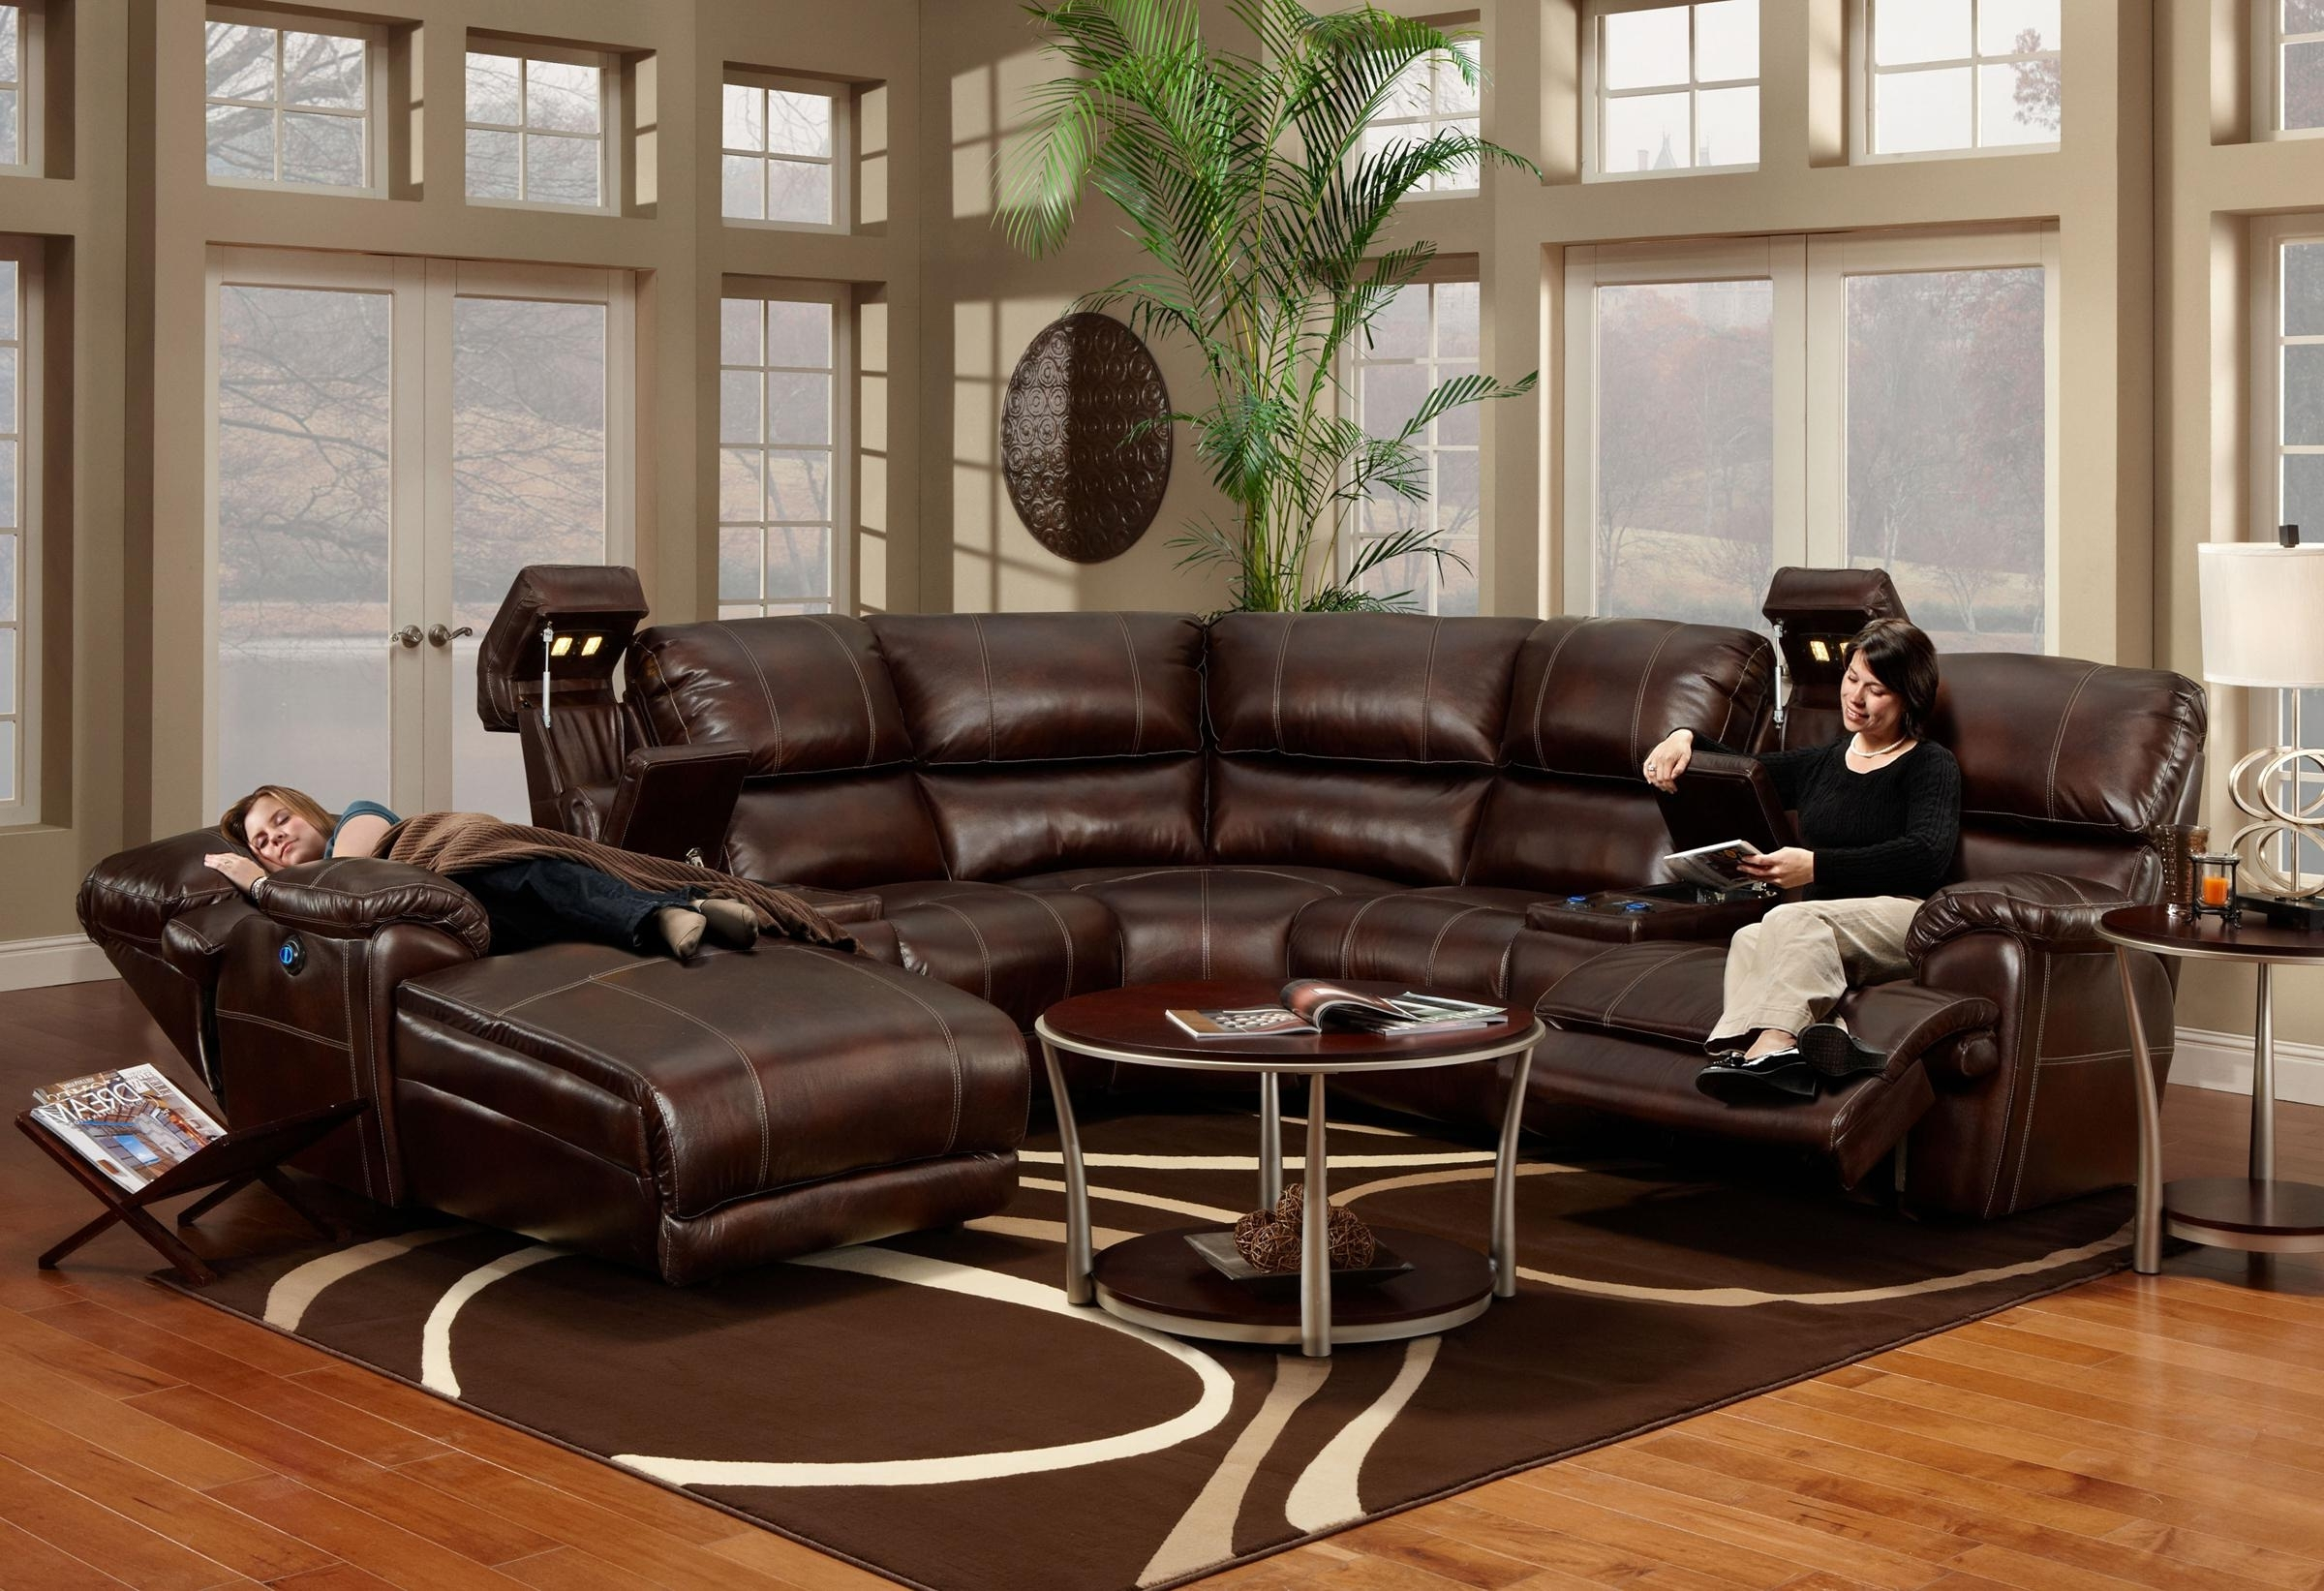 Franklin 572 Reclining Sectional Sofa With Chaise – Ahfa – Sofa Inside Trendy St Cloud Mn Sectional Sofas (View 2 of 20)